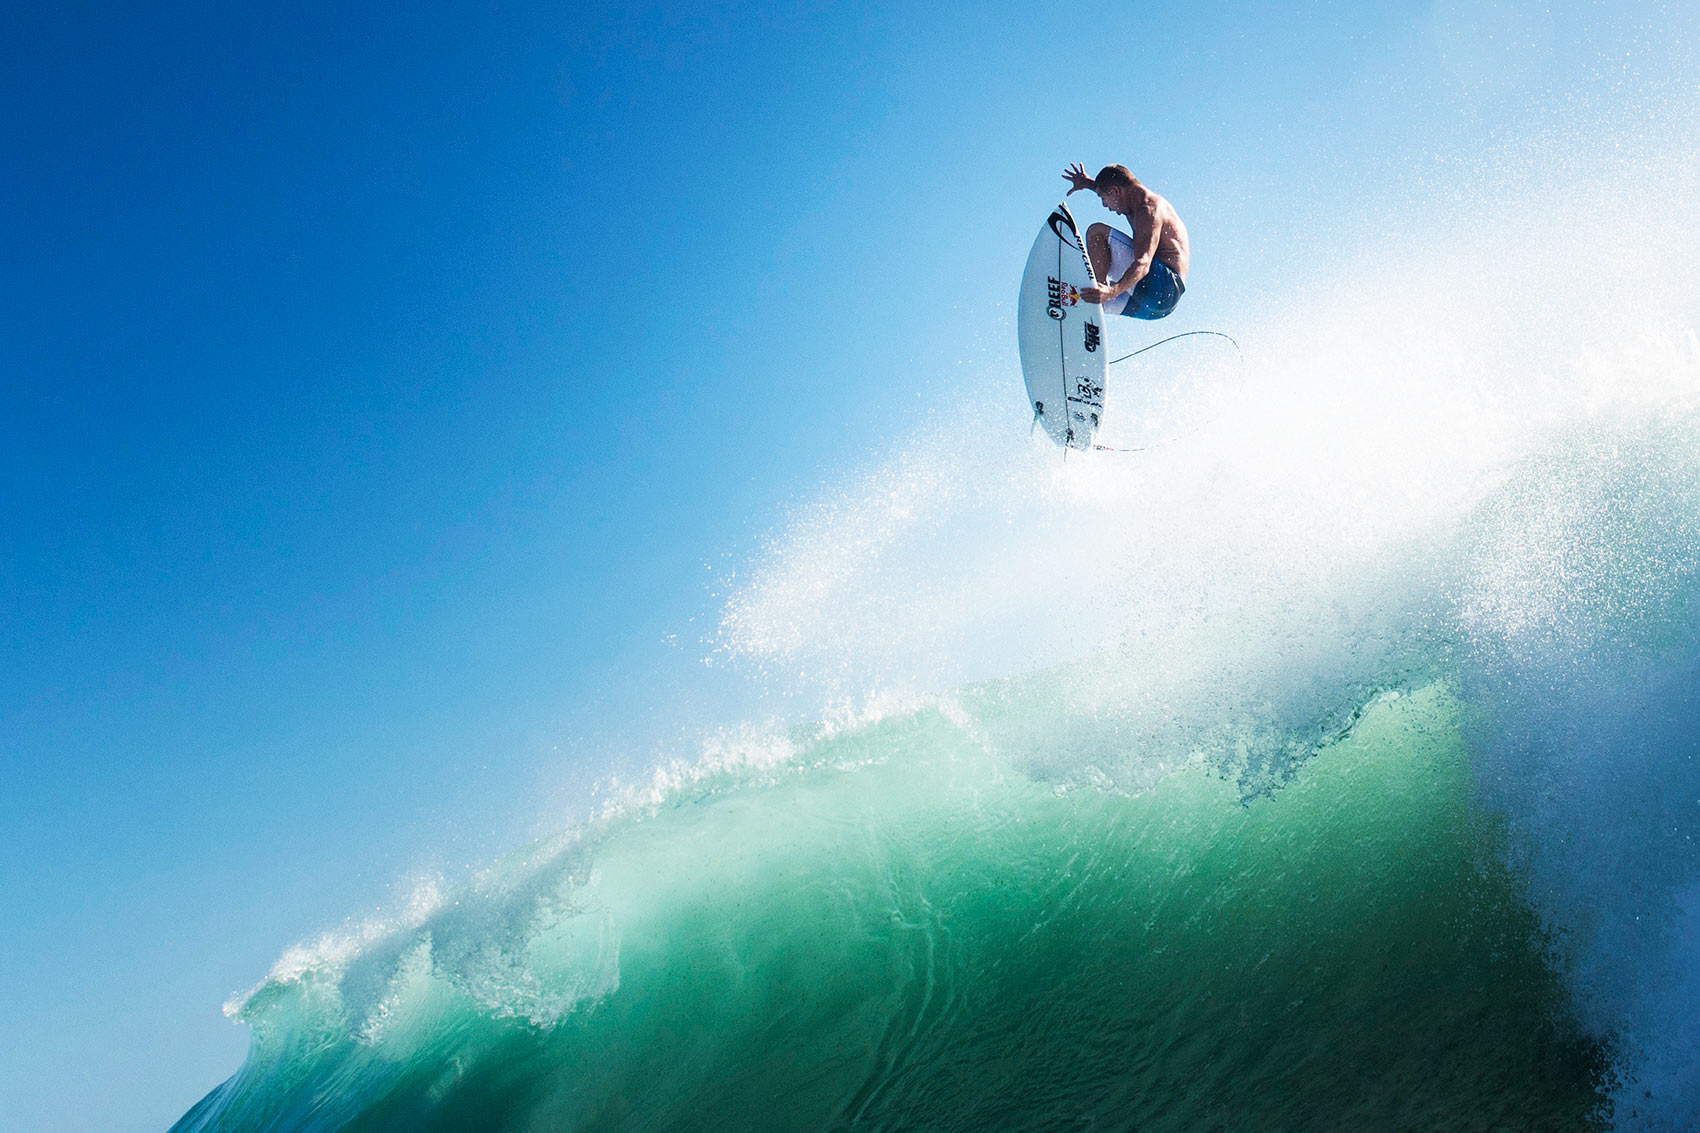 mick-fanning-corey-wilson-red-bull-content-pool